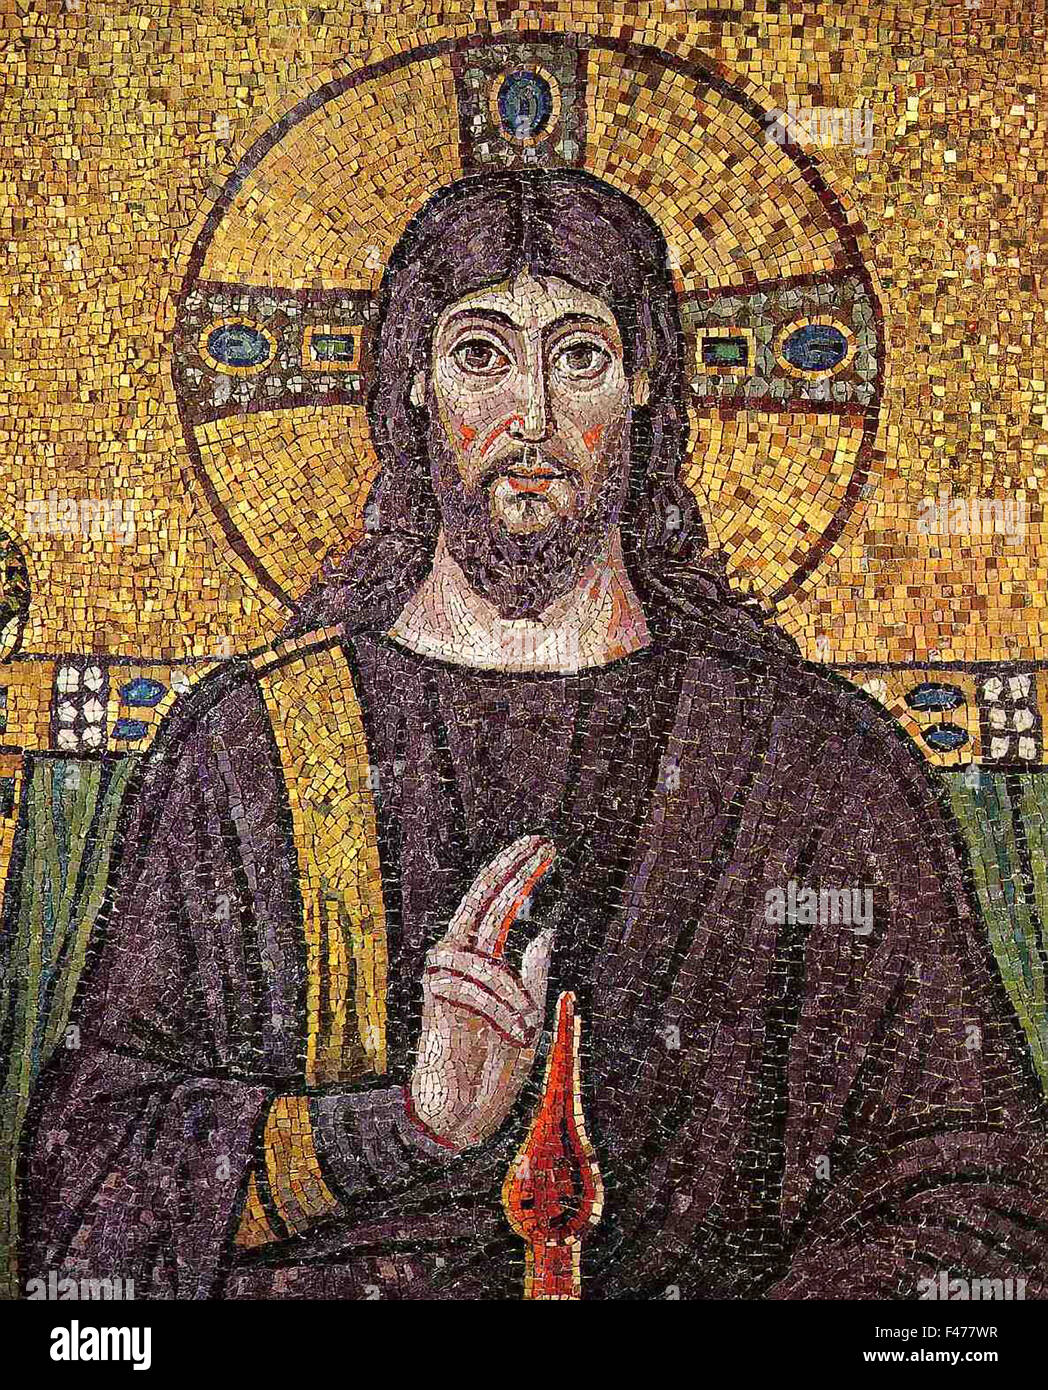 5779. Jesus Christ,  Detail of mosaic dating from the 6th. C, church of St. Apollinare Nuovo, Ravenna, Italy - Stock Image